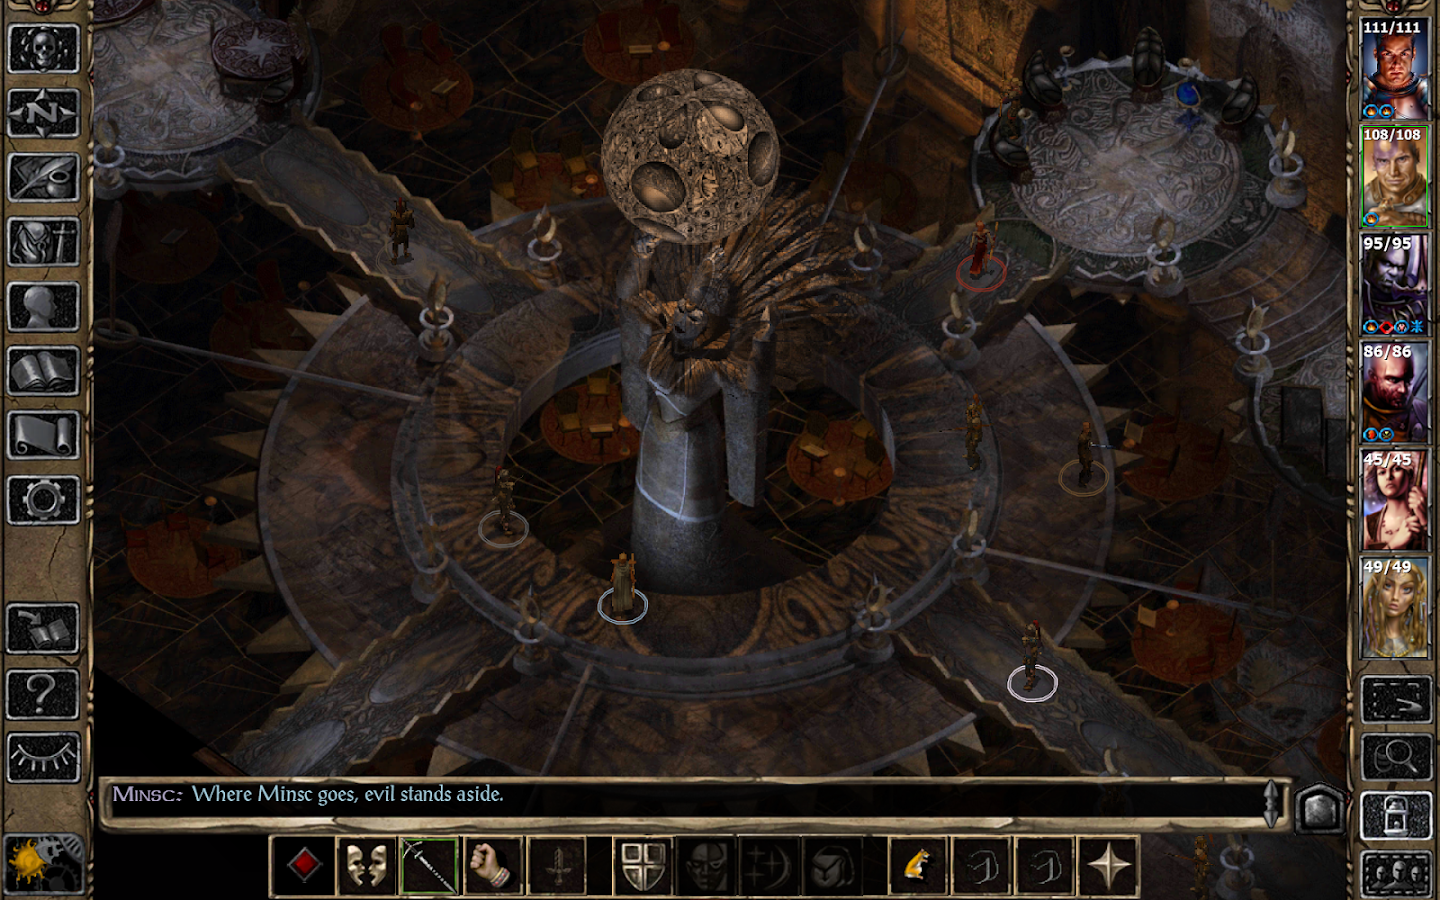 Baldur's Gate II Screenshot 18